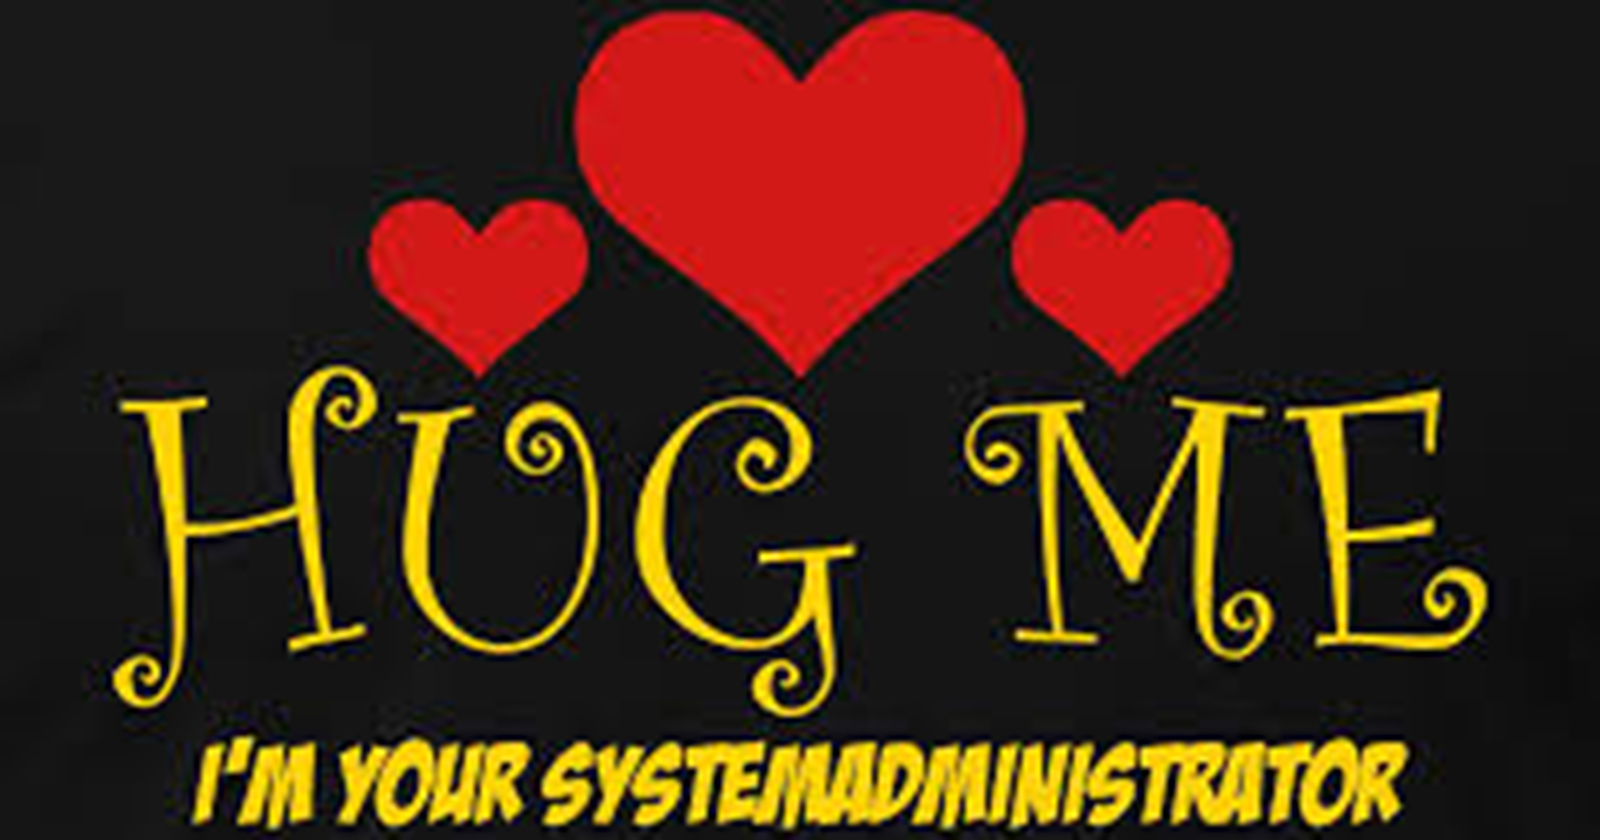 080118 1049 SystemAdmin7